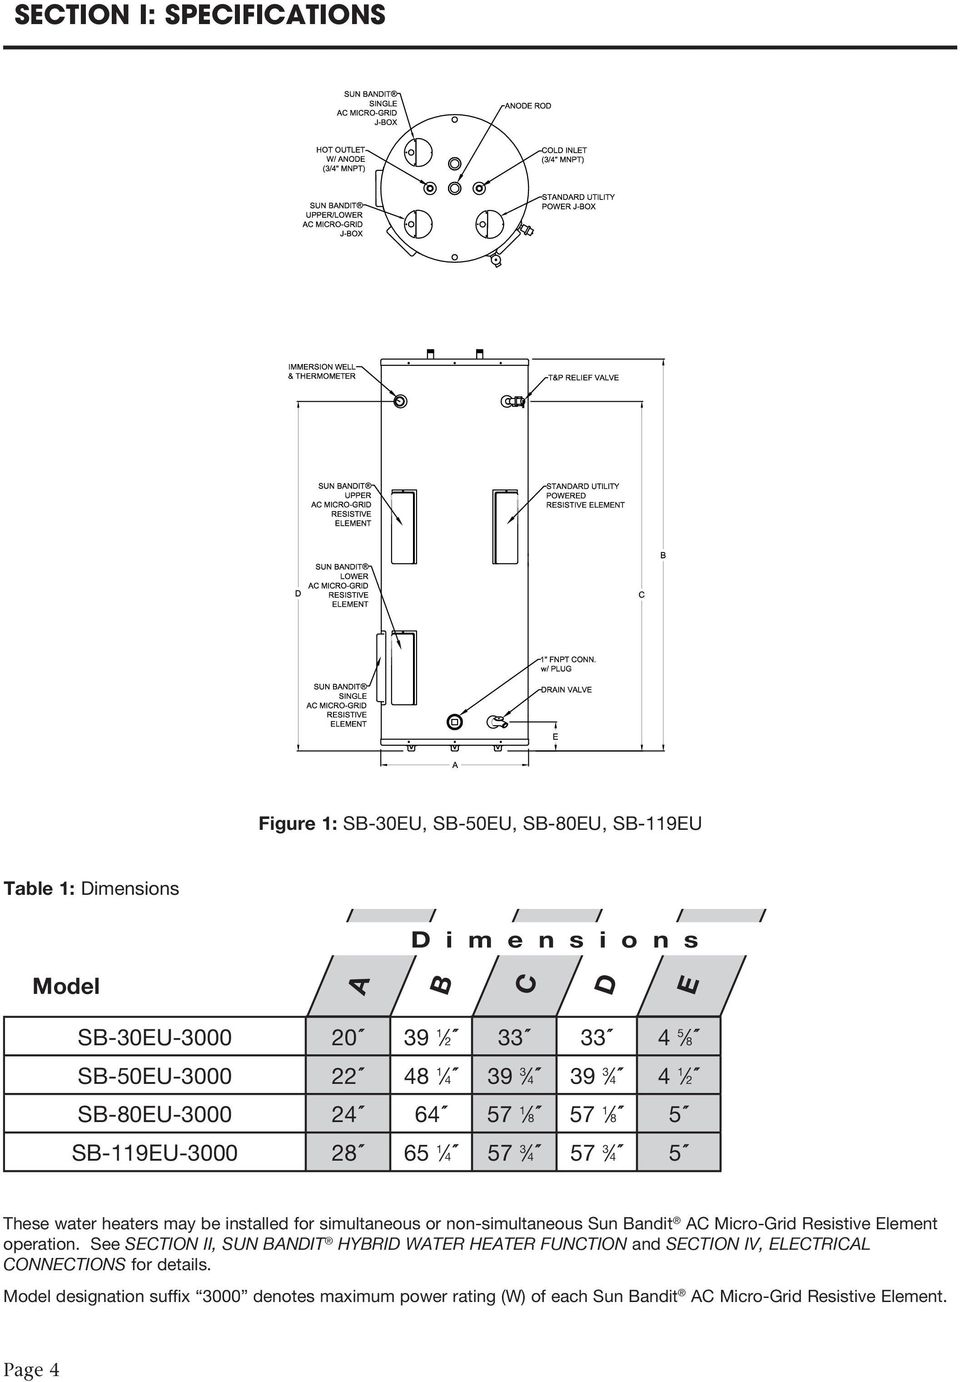 Sun Bandit Hybrid Water Heater Installation Operation And Solar 1 Touch Space Wiring Diagram For Simultaneous Or Non Ac Micro Grid Resistive Element